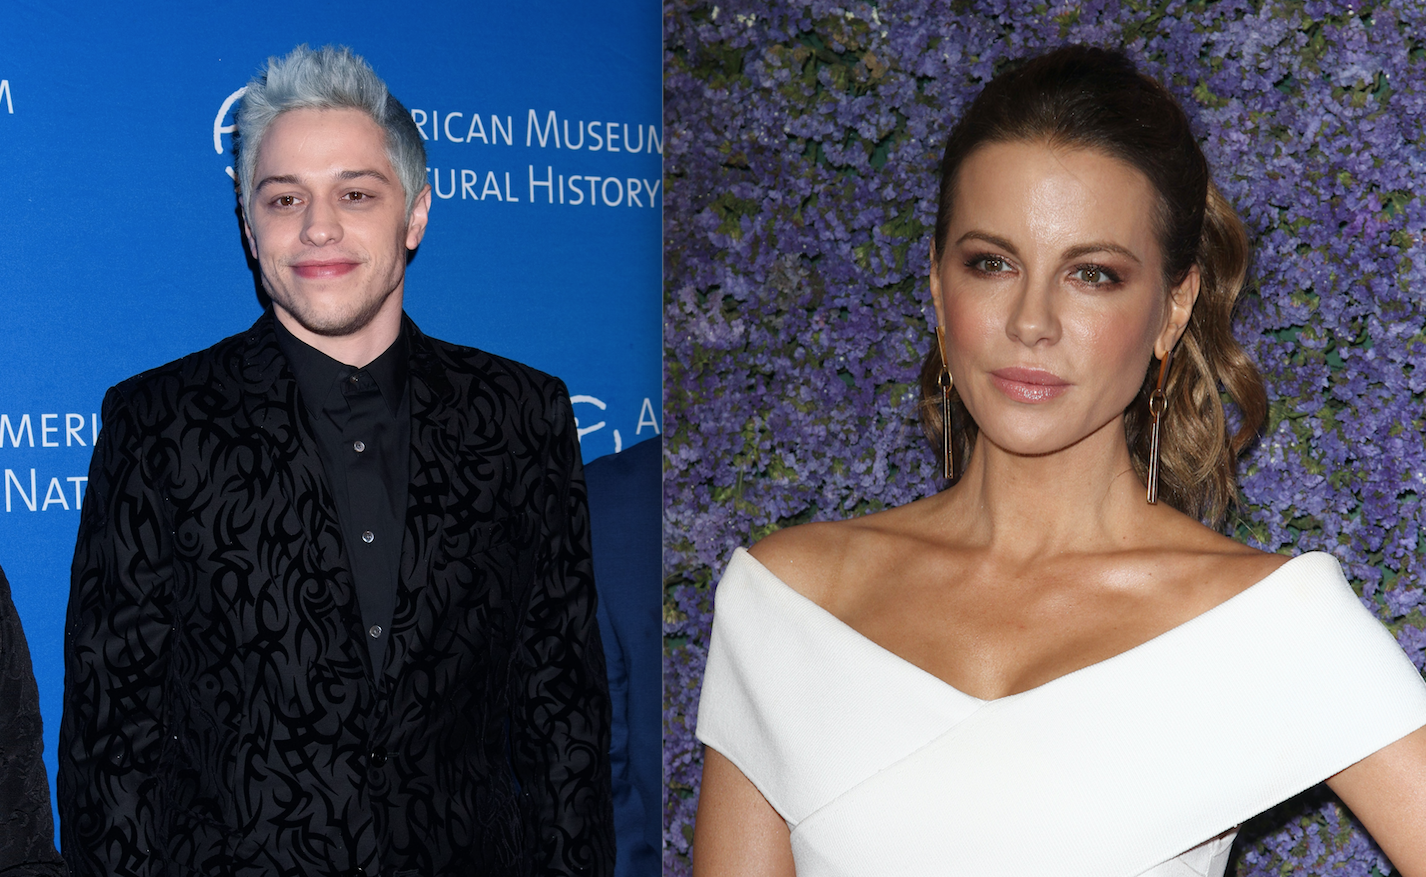 , Kate Beckinsale spotts at pre-grammys bash is the Pete Davidson's exes kaia gerber. Here details